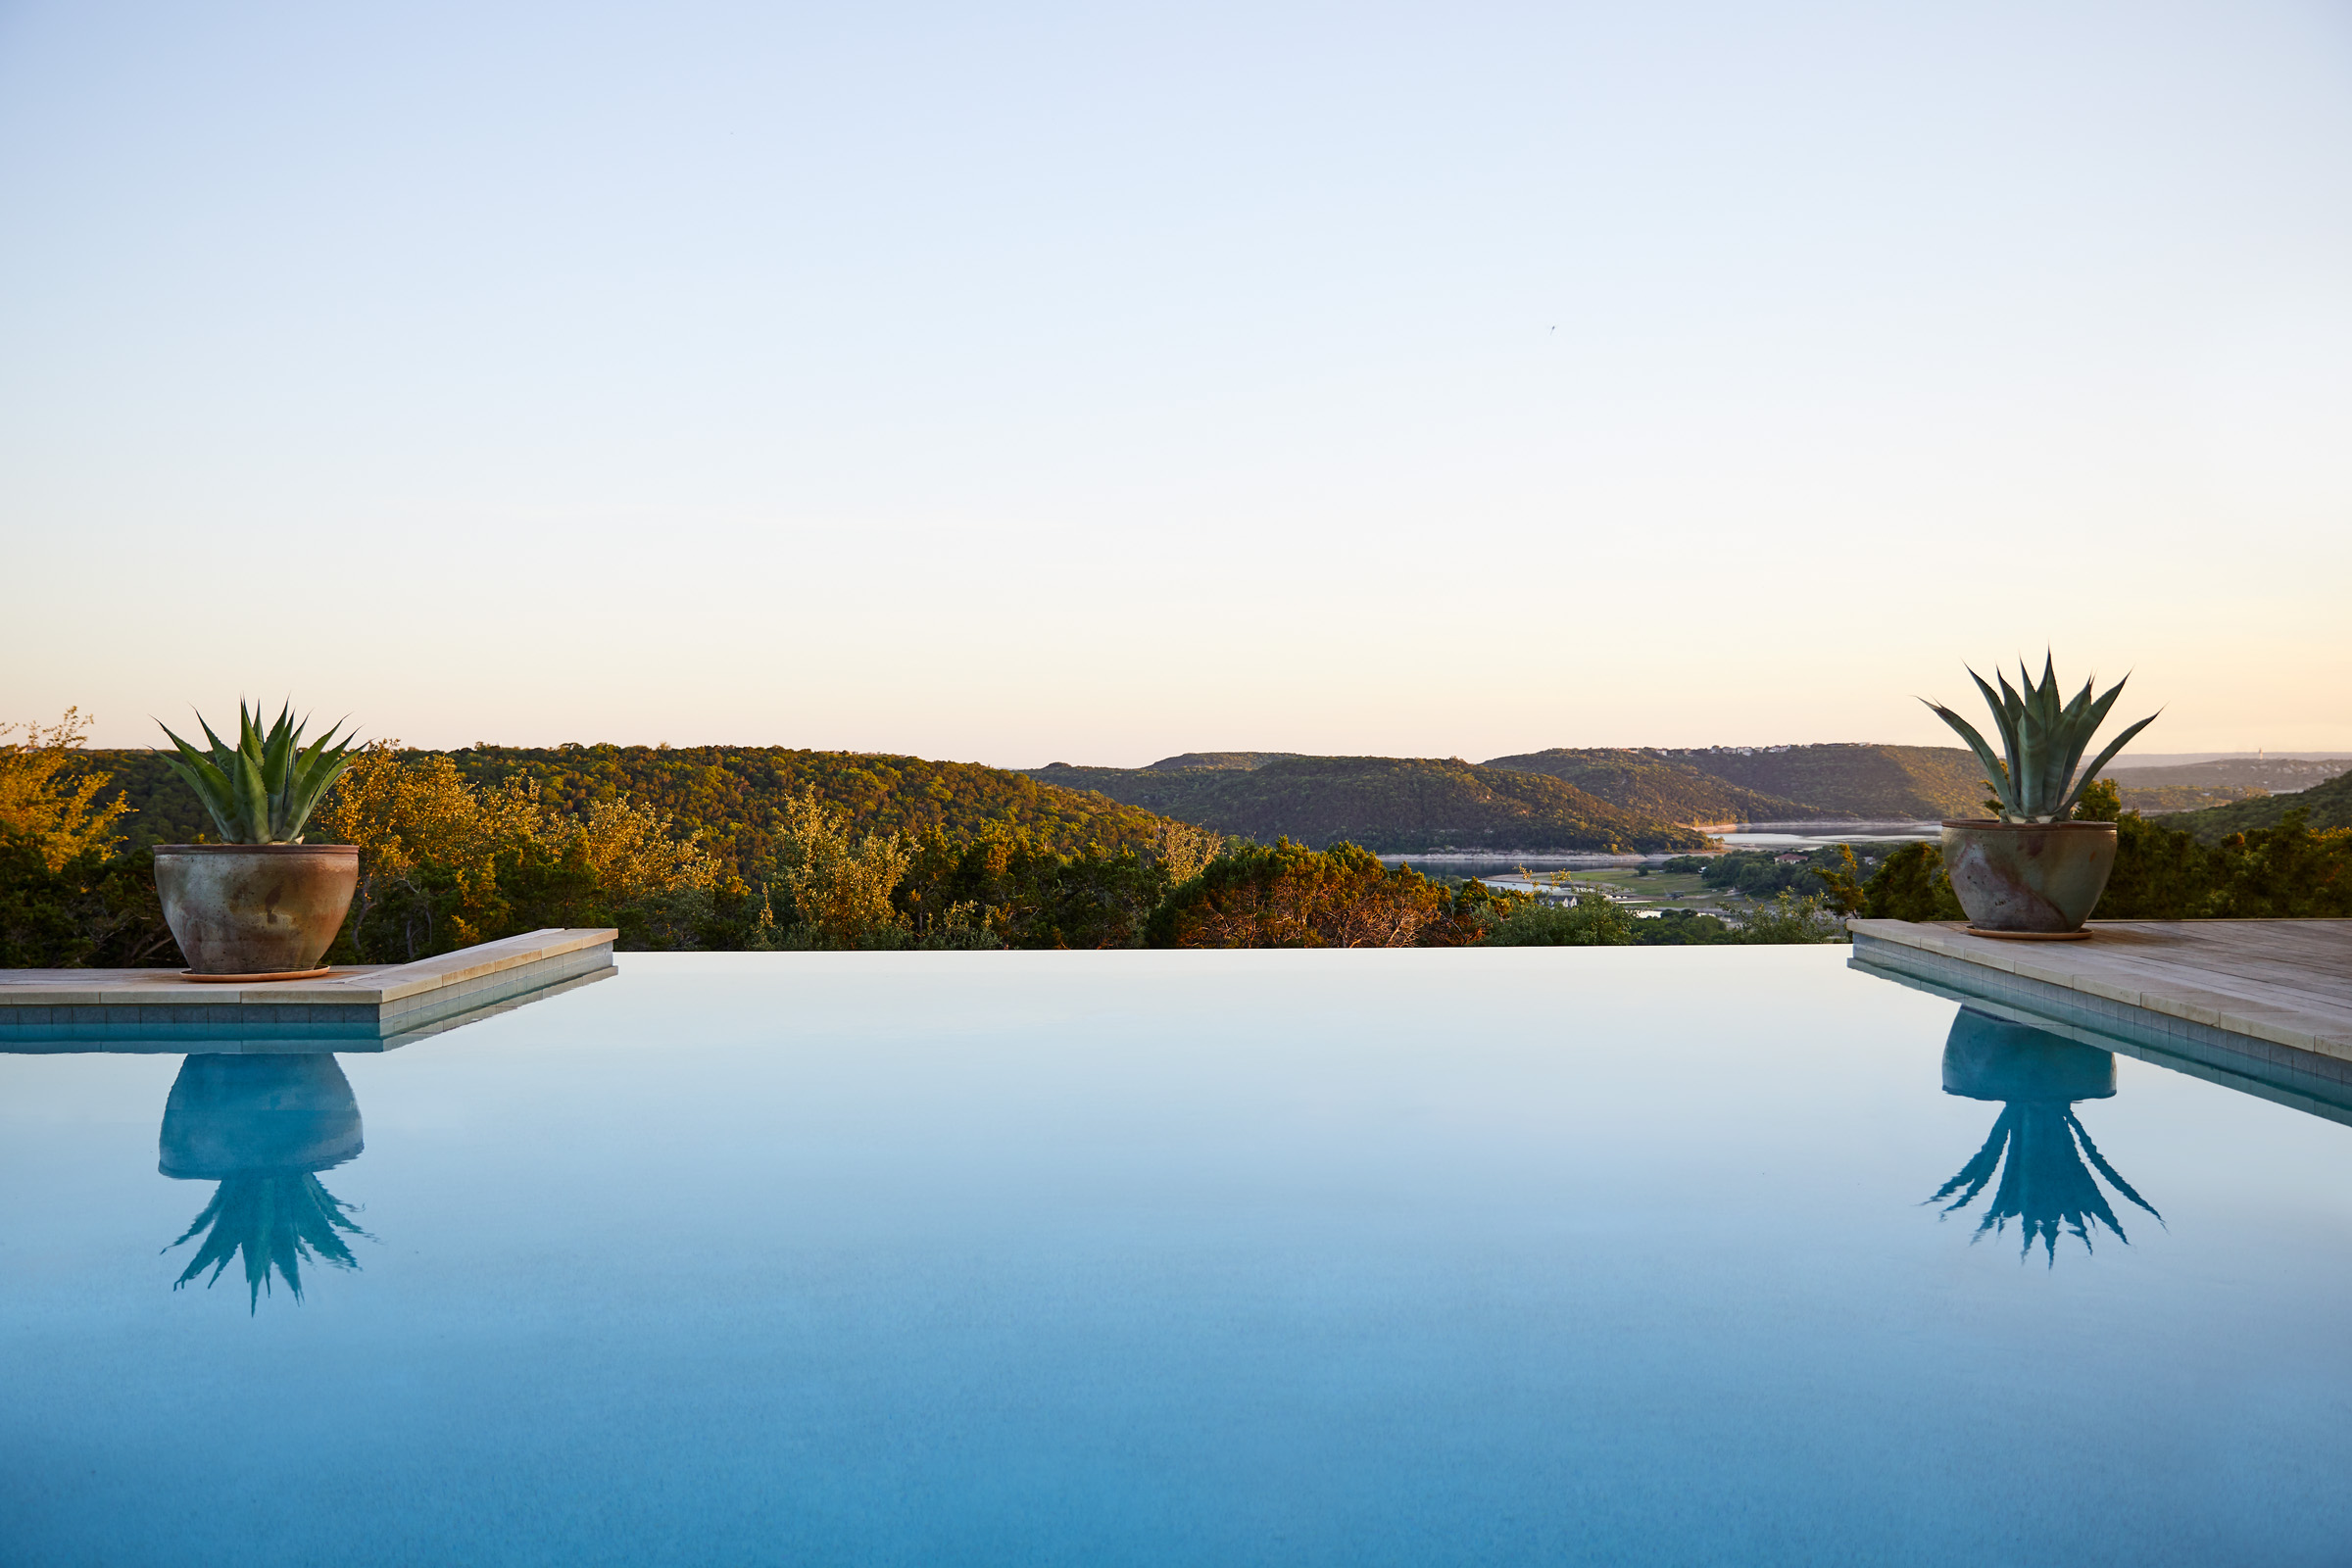 Serenity Pool // Courtesy of James Baigrie for Miraval Austin